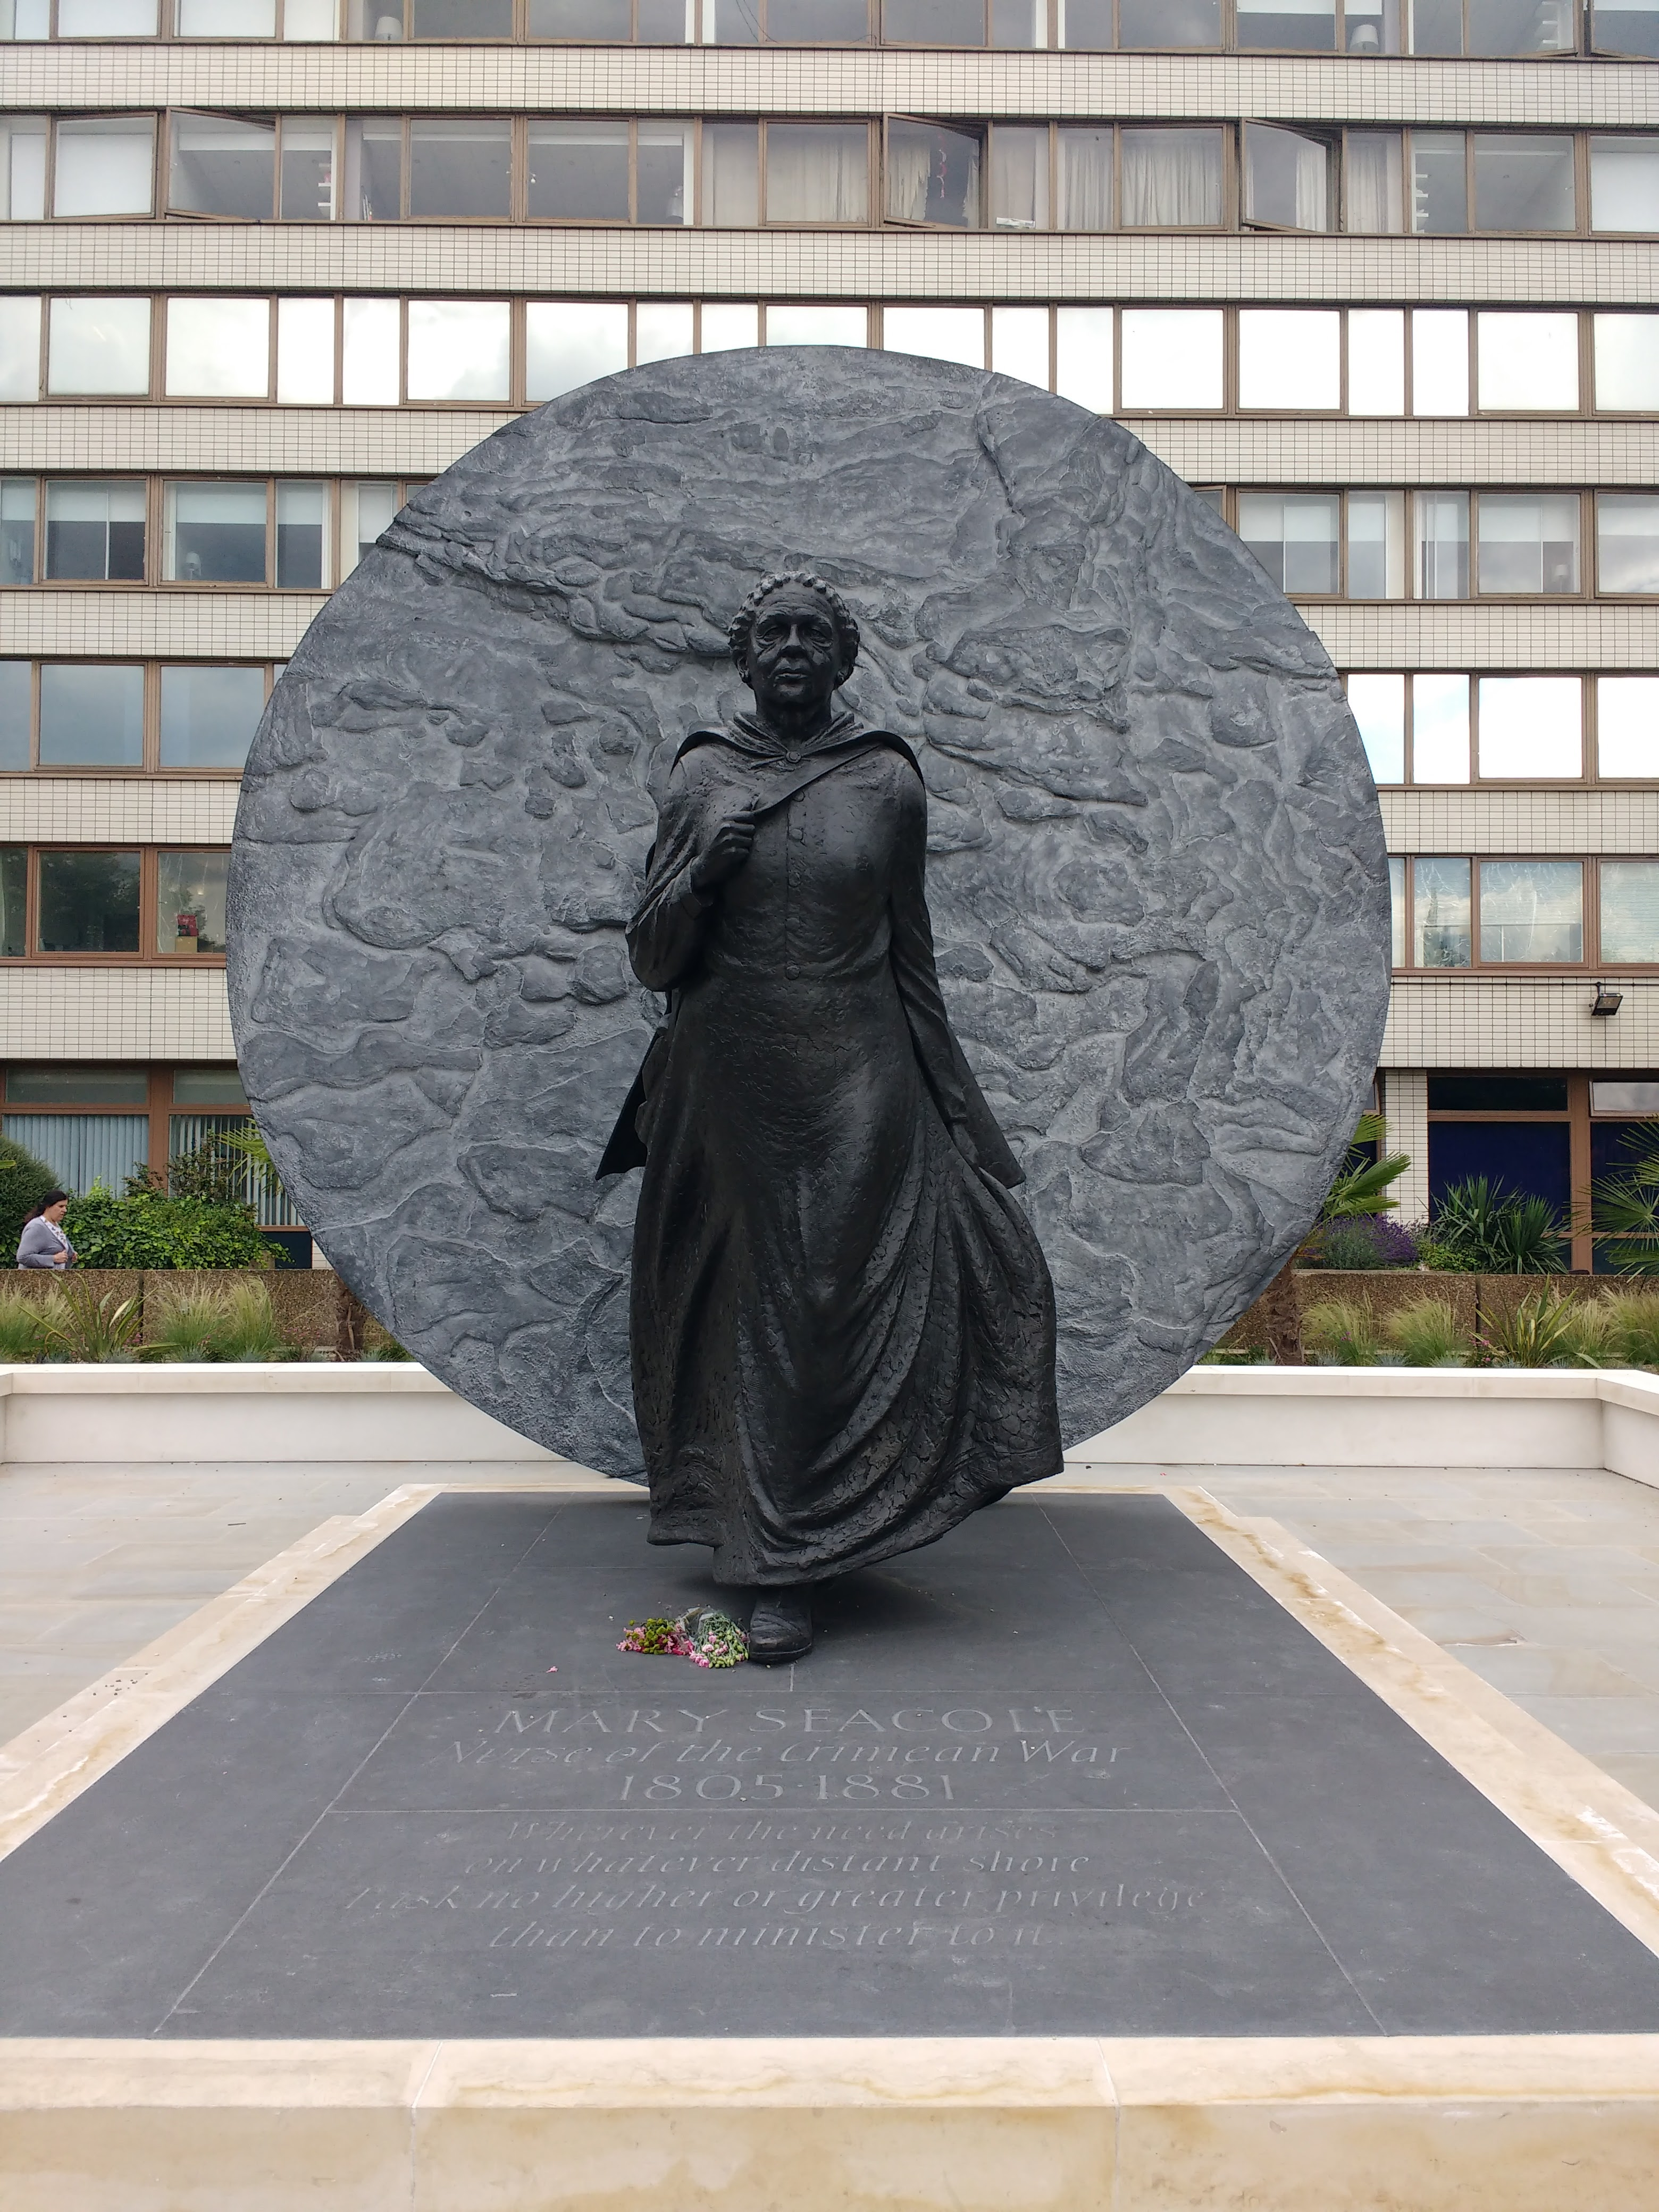 The statue depicts Mary walking forward in a long dress, with a circle behind her.